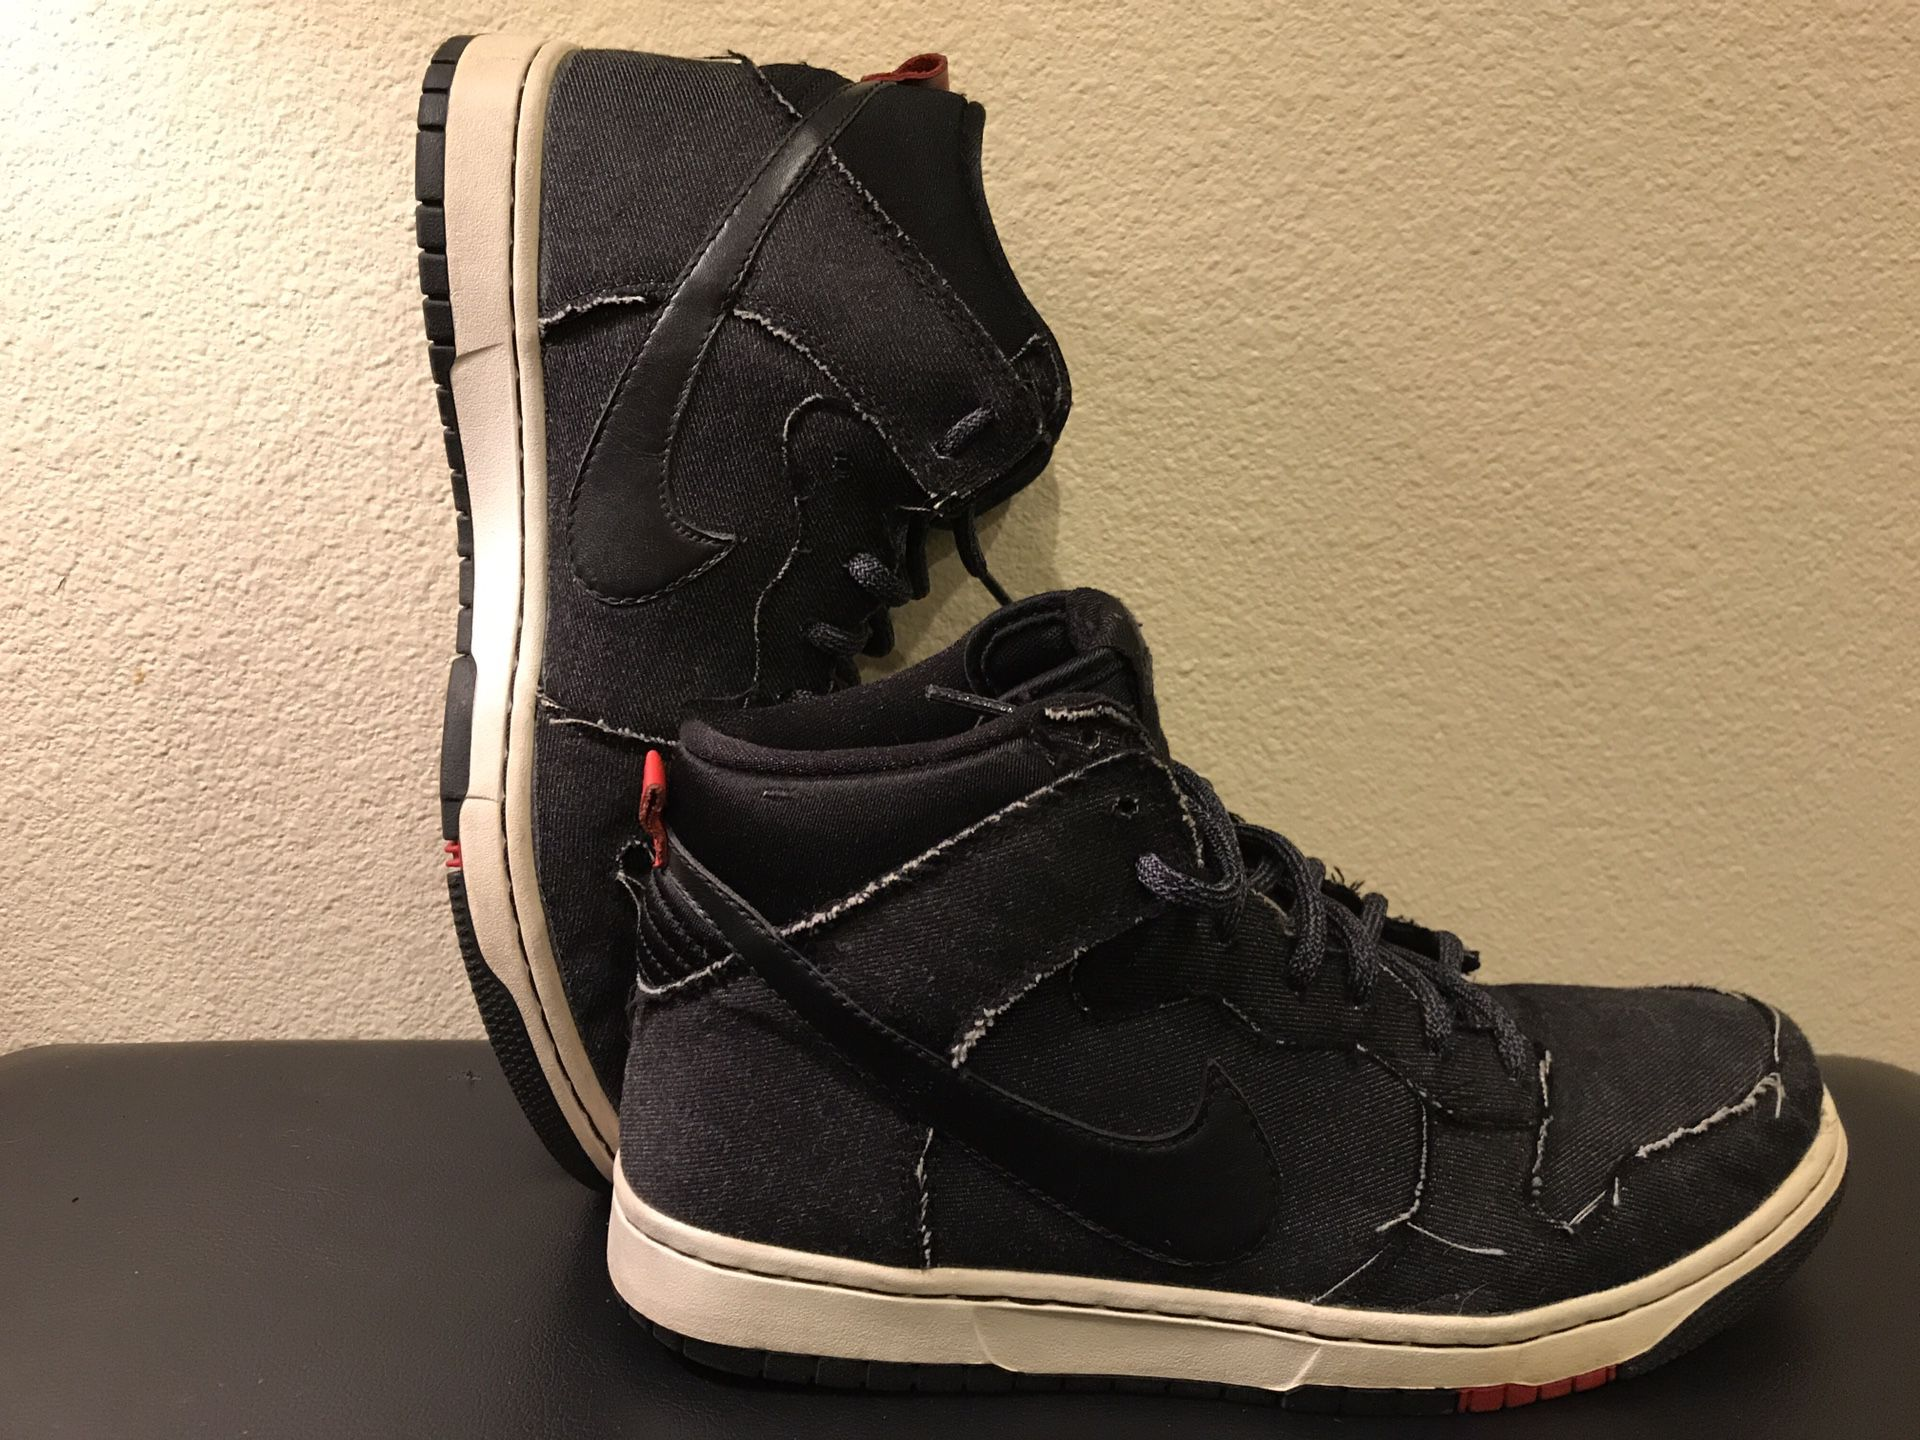 Nike Jeans Shoes - Size 9.5